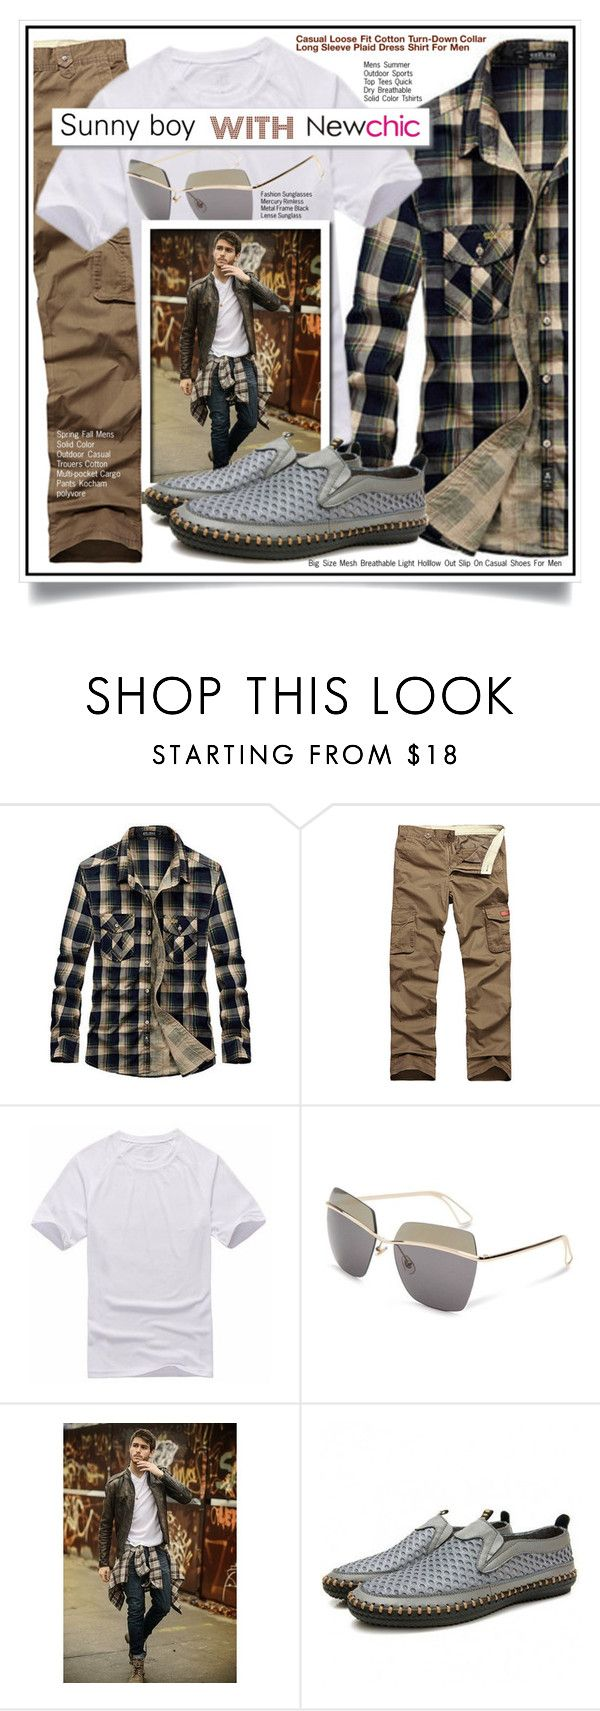 """Newchic contest - Sunny boy"" by ewa-naukowicz-wojcik ❤ liked on Polyvore featuring White Label, men's fashion, menswear, chic, New and newchic"